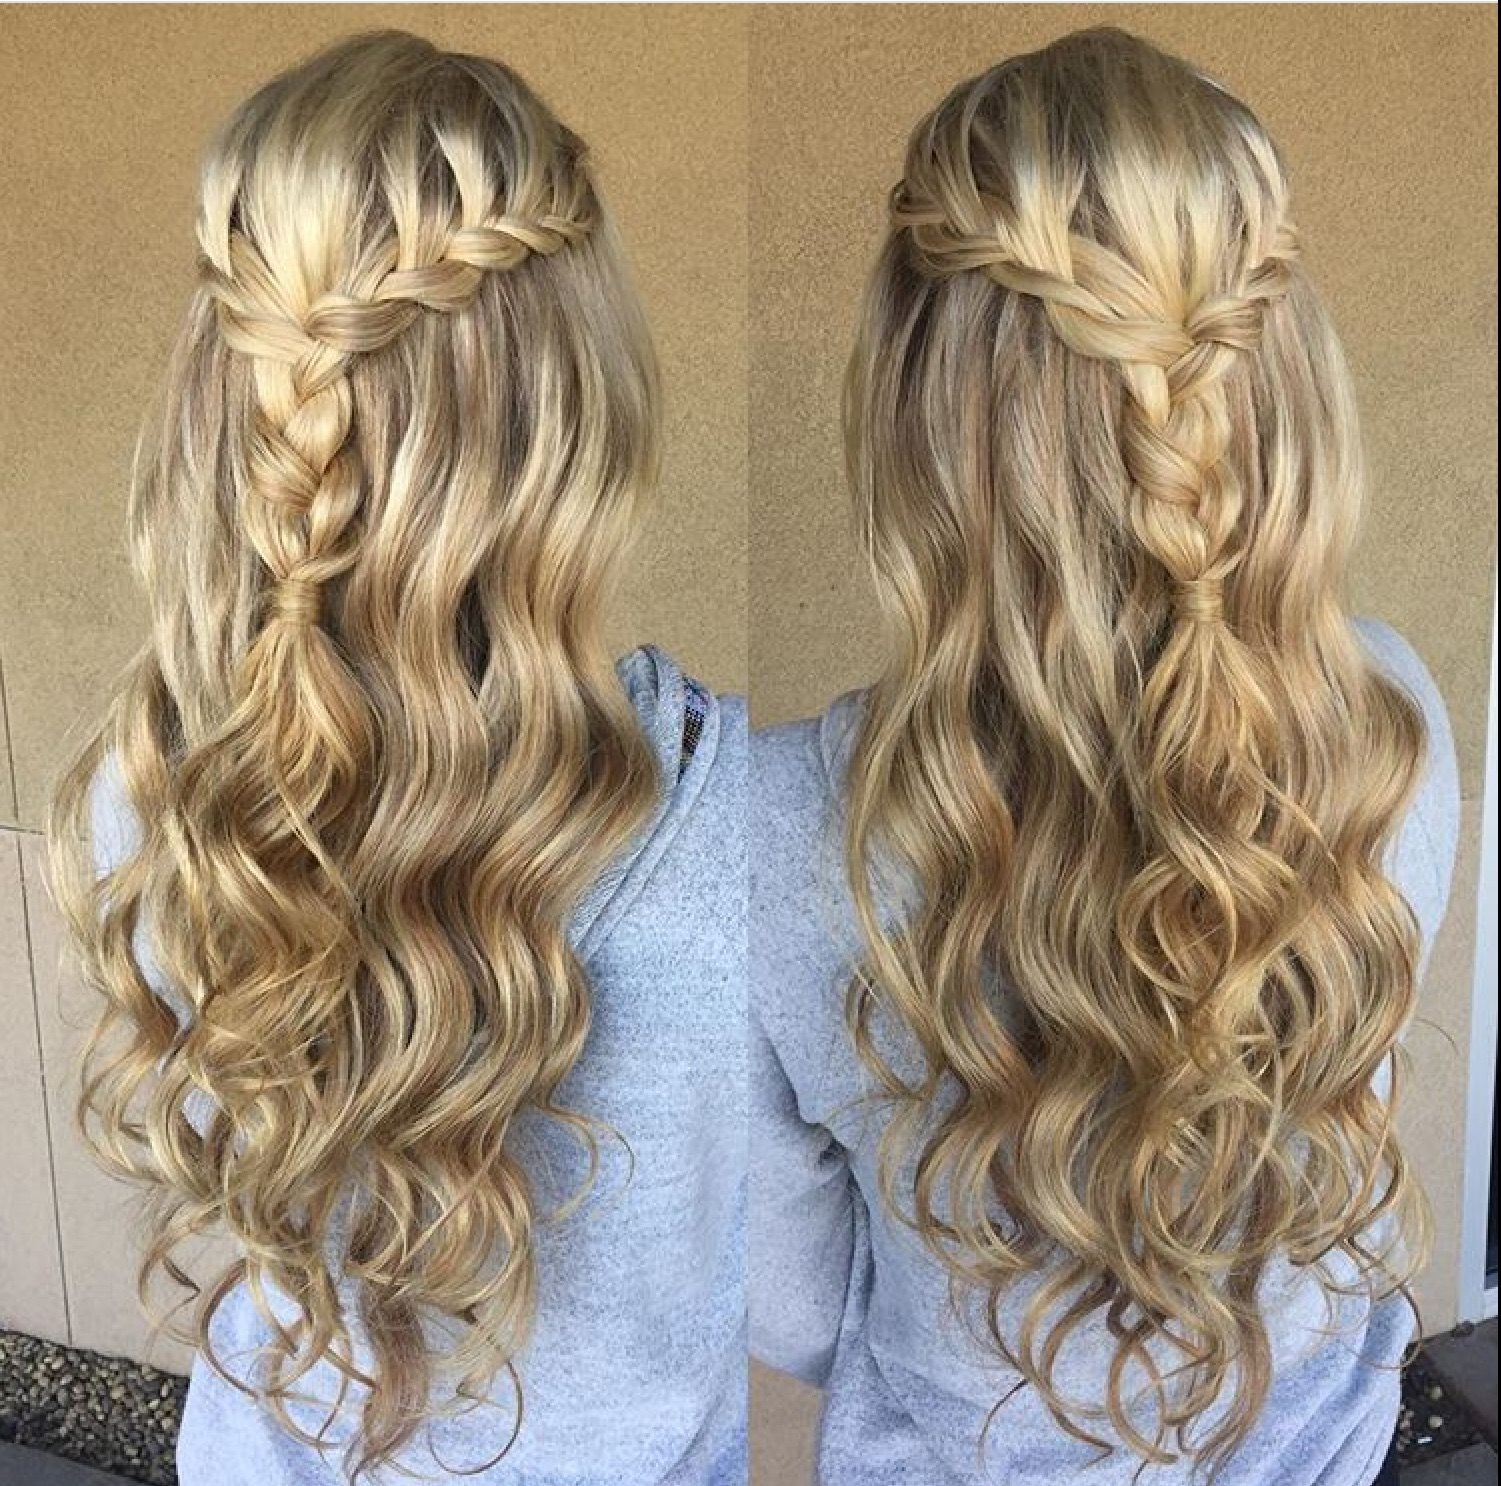 85698c52c1d2979b3f4dd4c9049e7f3a Jpg 1501 1486 Long Hair Wedding Styles Prom Hairstyles For Long Hair Hair Styles